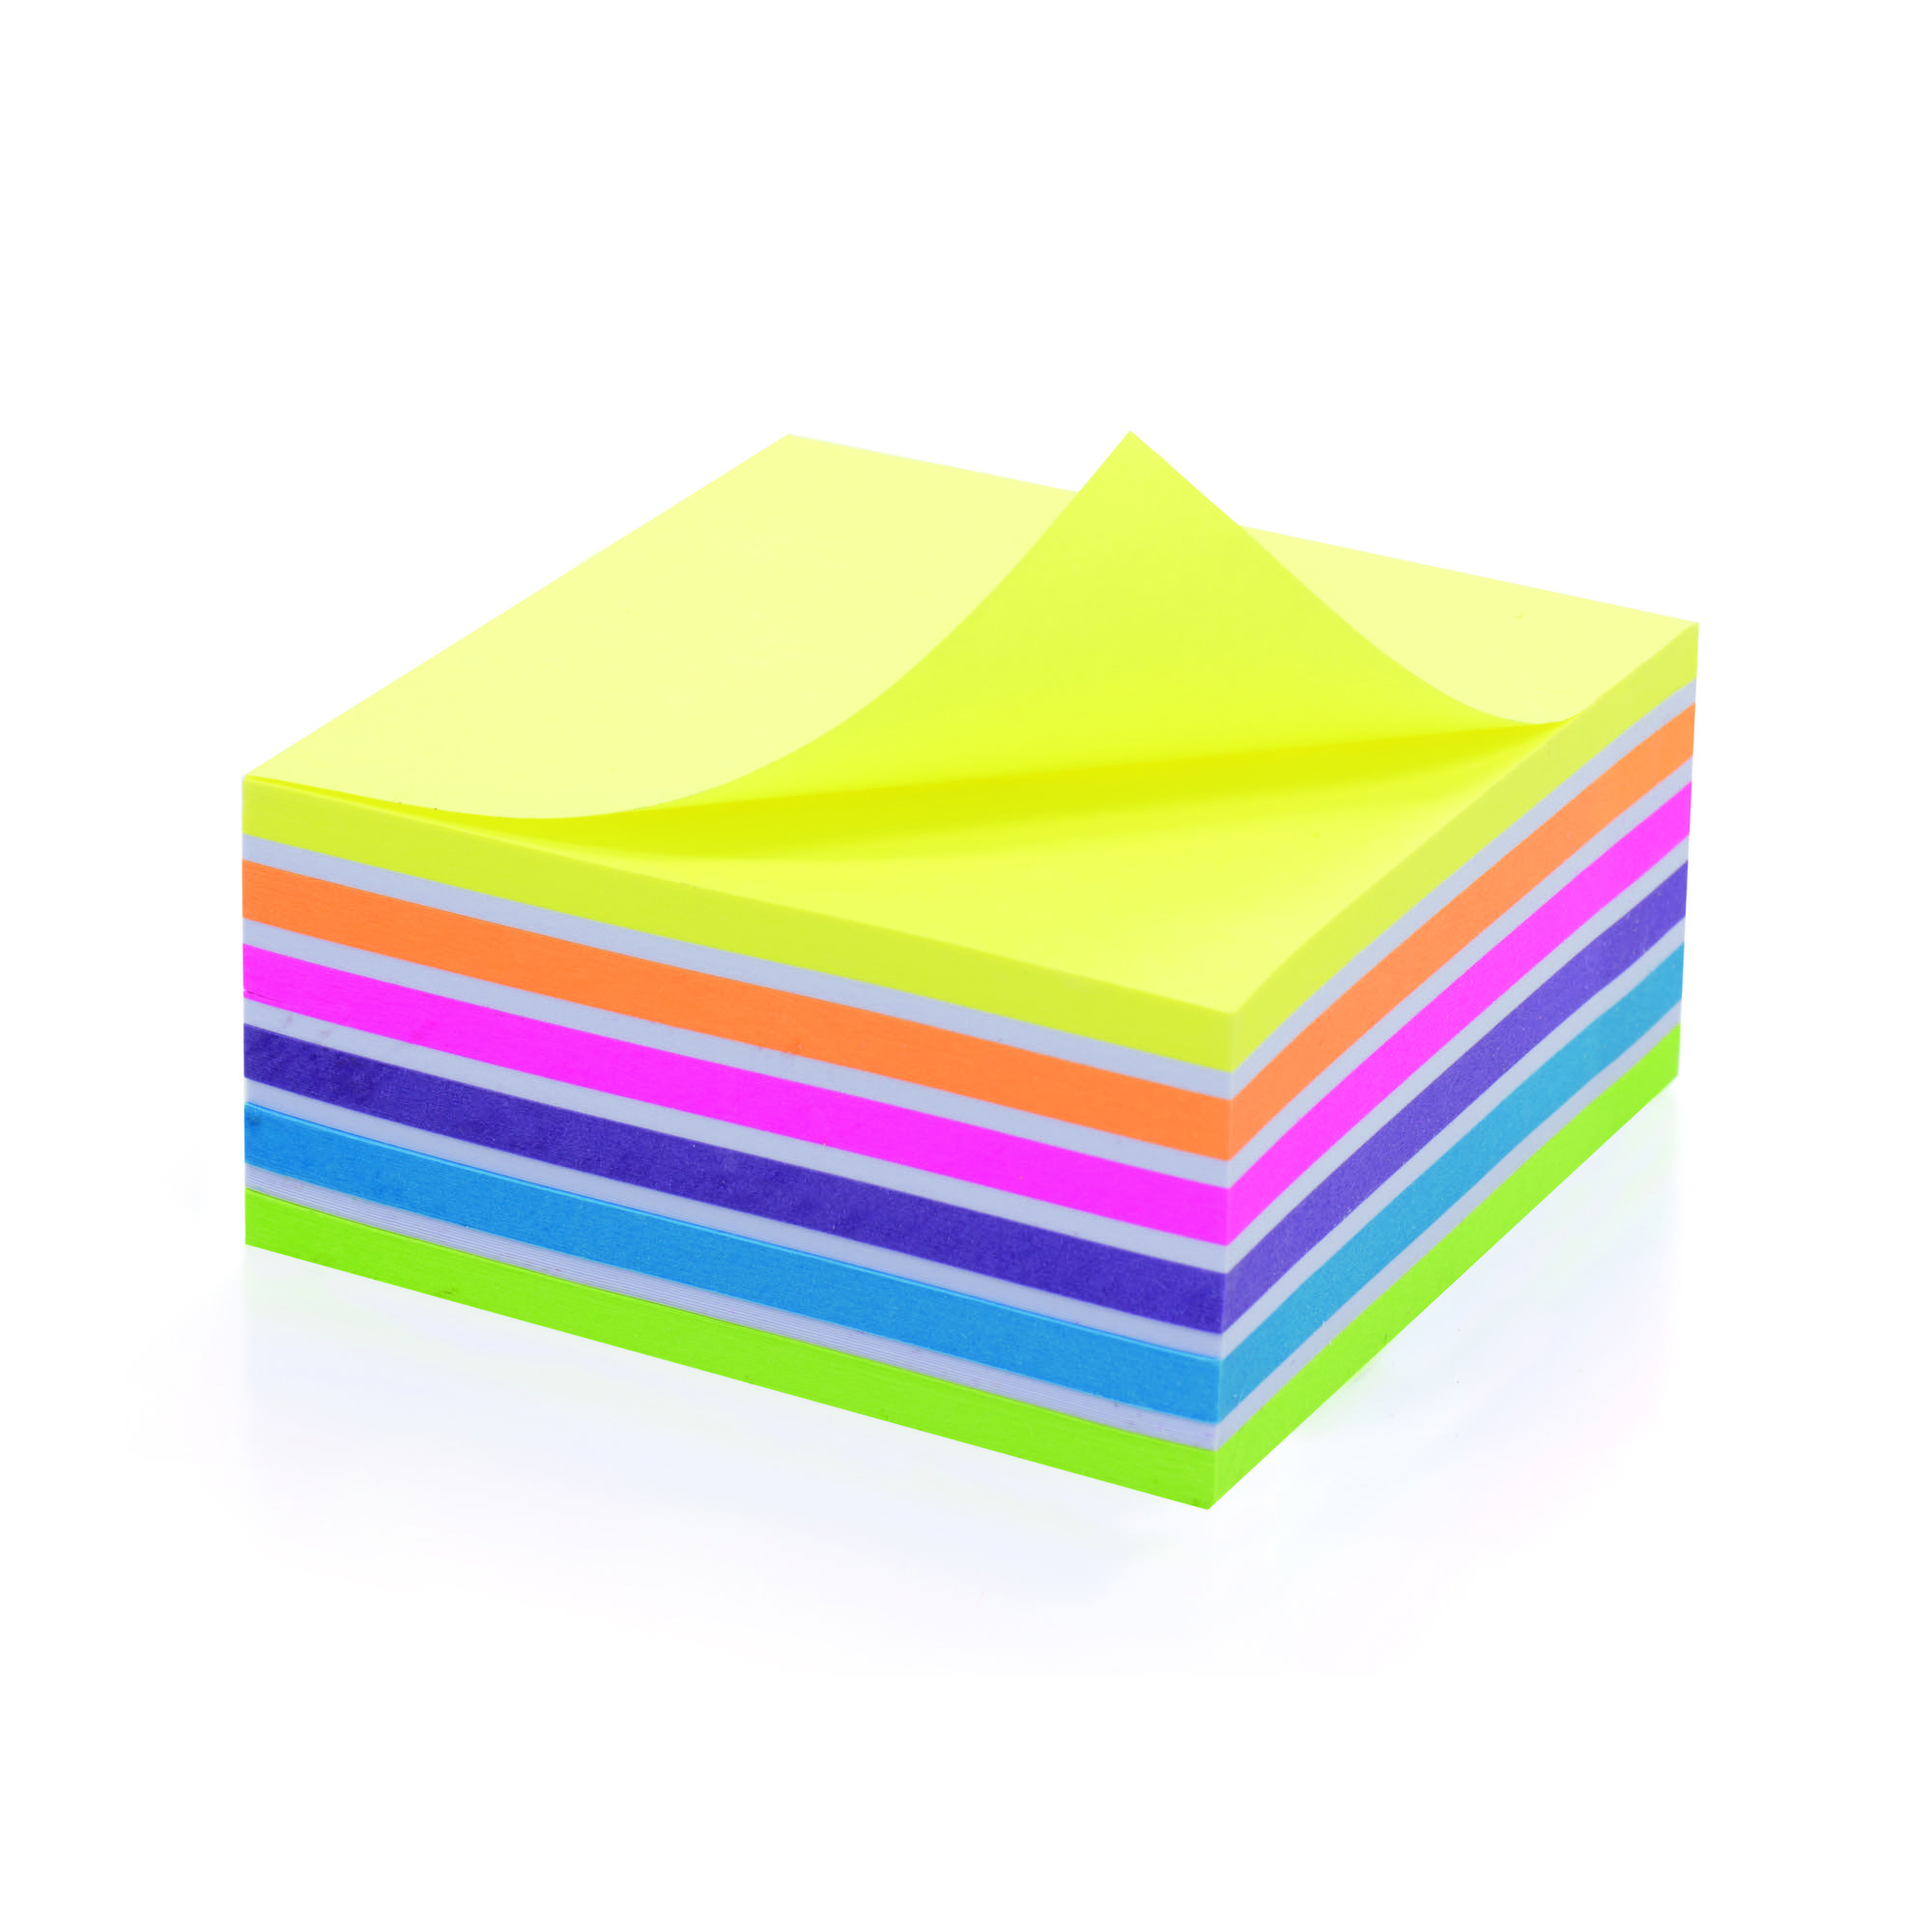 Initiative Sticky Notes Neon Cube 400 Sheets Assorted Colours 76x76mm